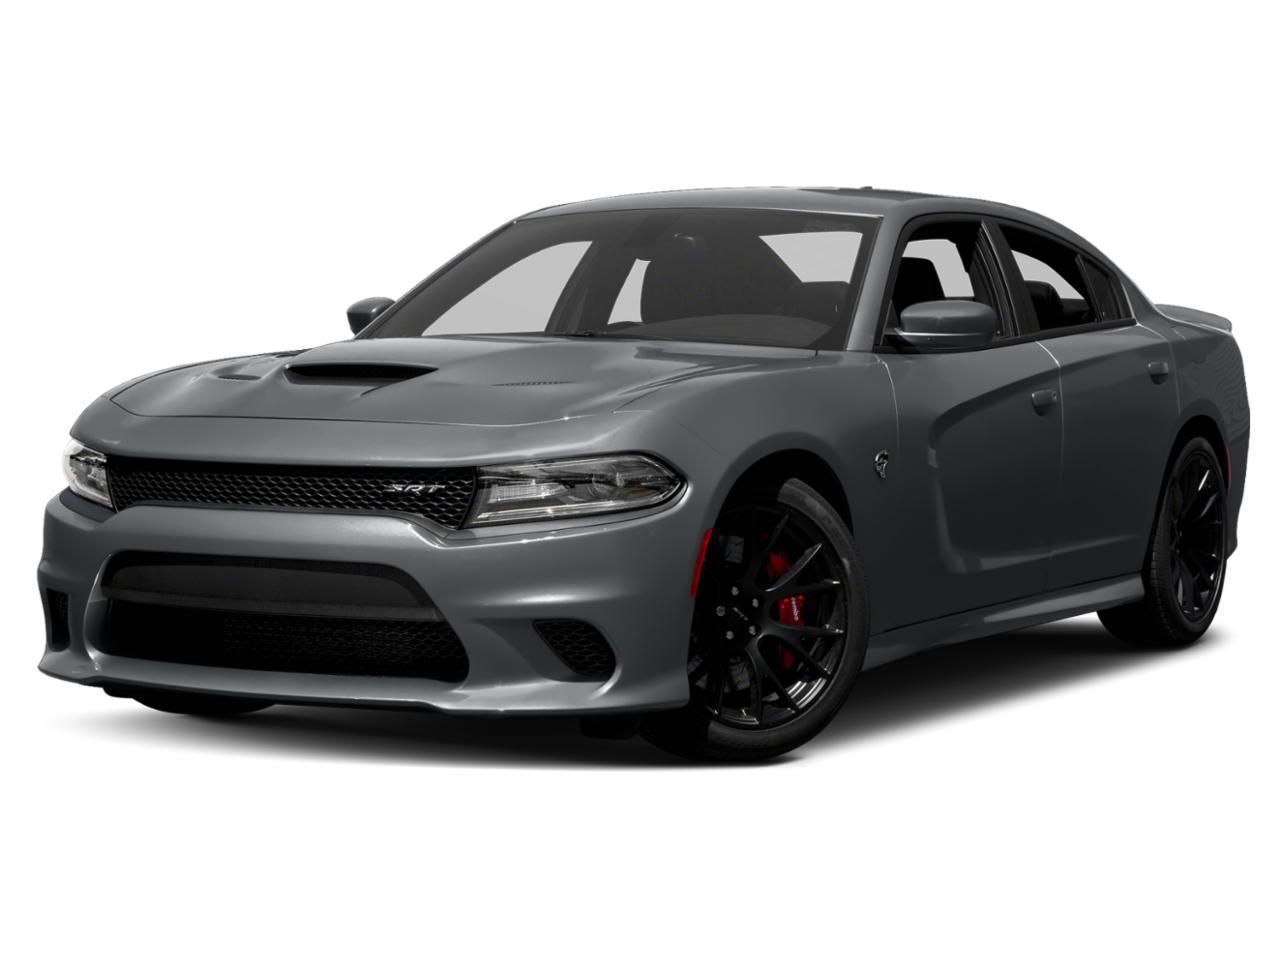 2018 Dodge Charger Vehicle Photo in American Fork, UT 84003